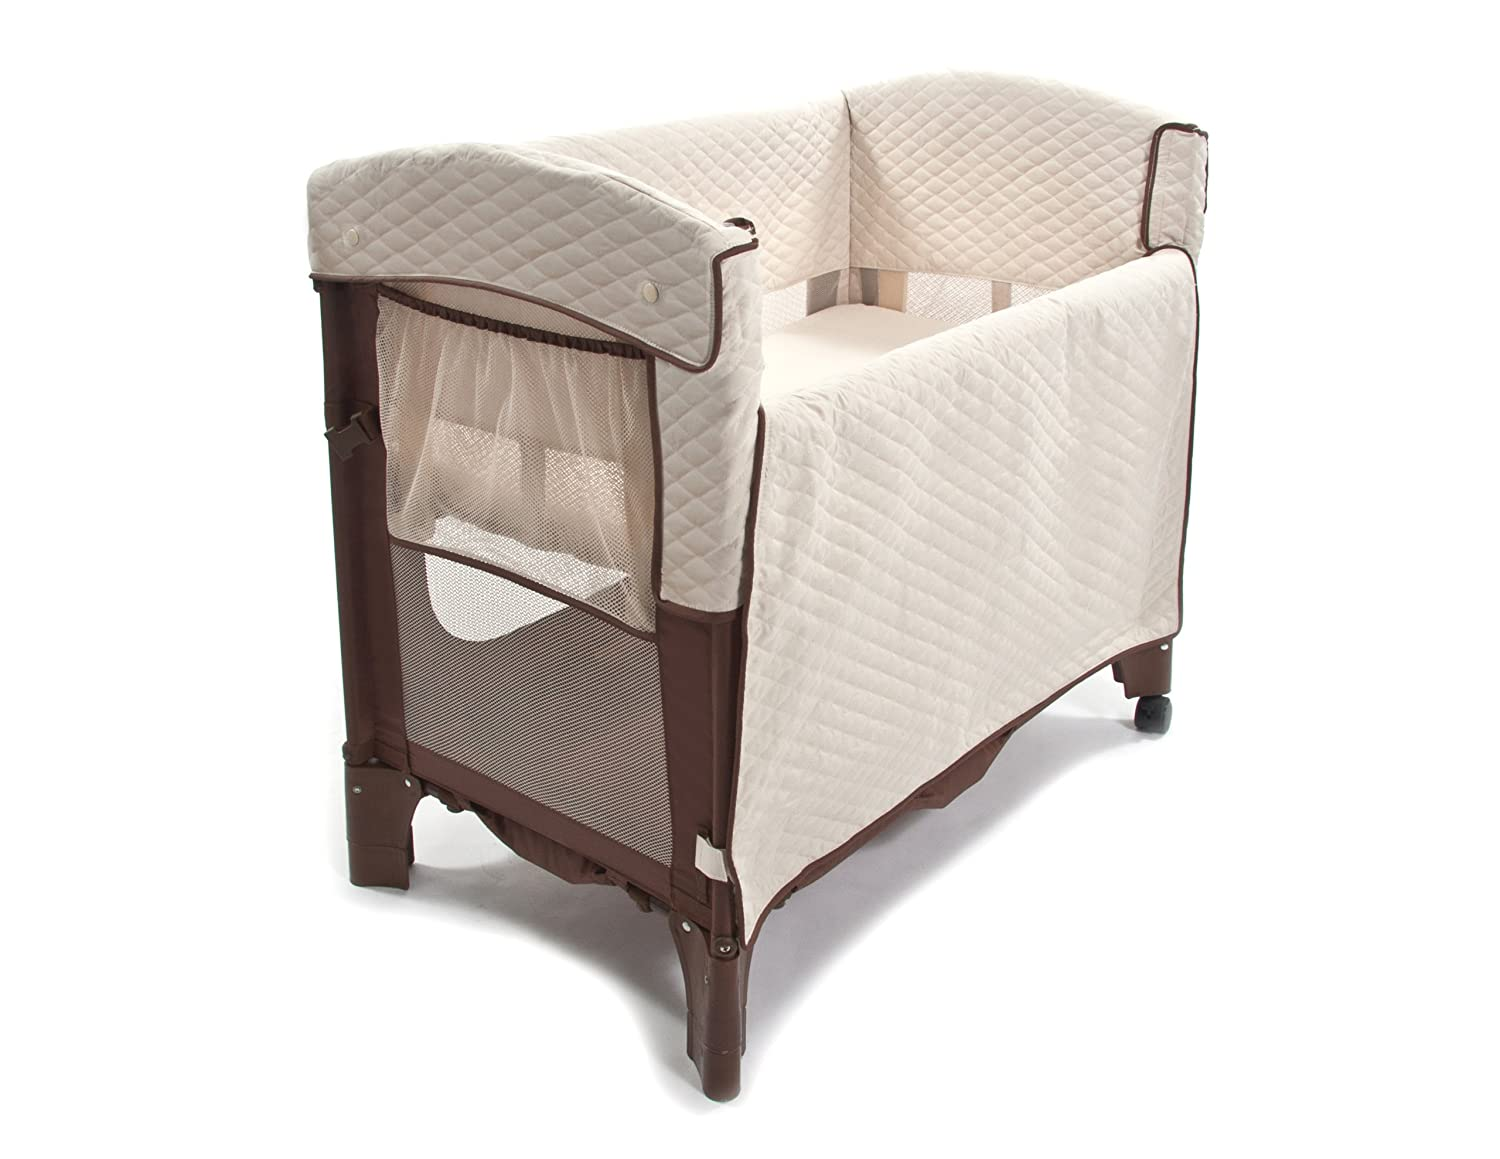 Amazon.com : Arm's Reach Curved Mini Convertible Co-Sleeper 5213-CN-P,  Cocoa/Natural : Baby